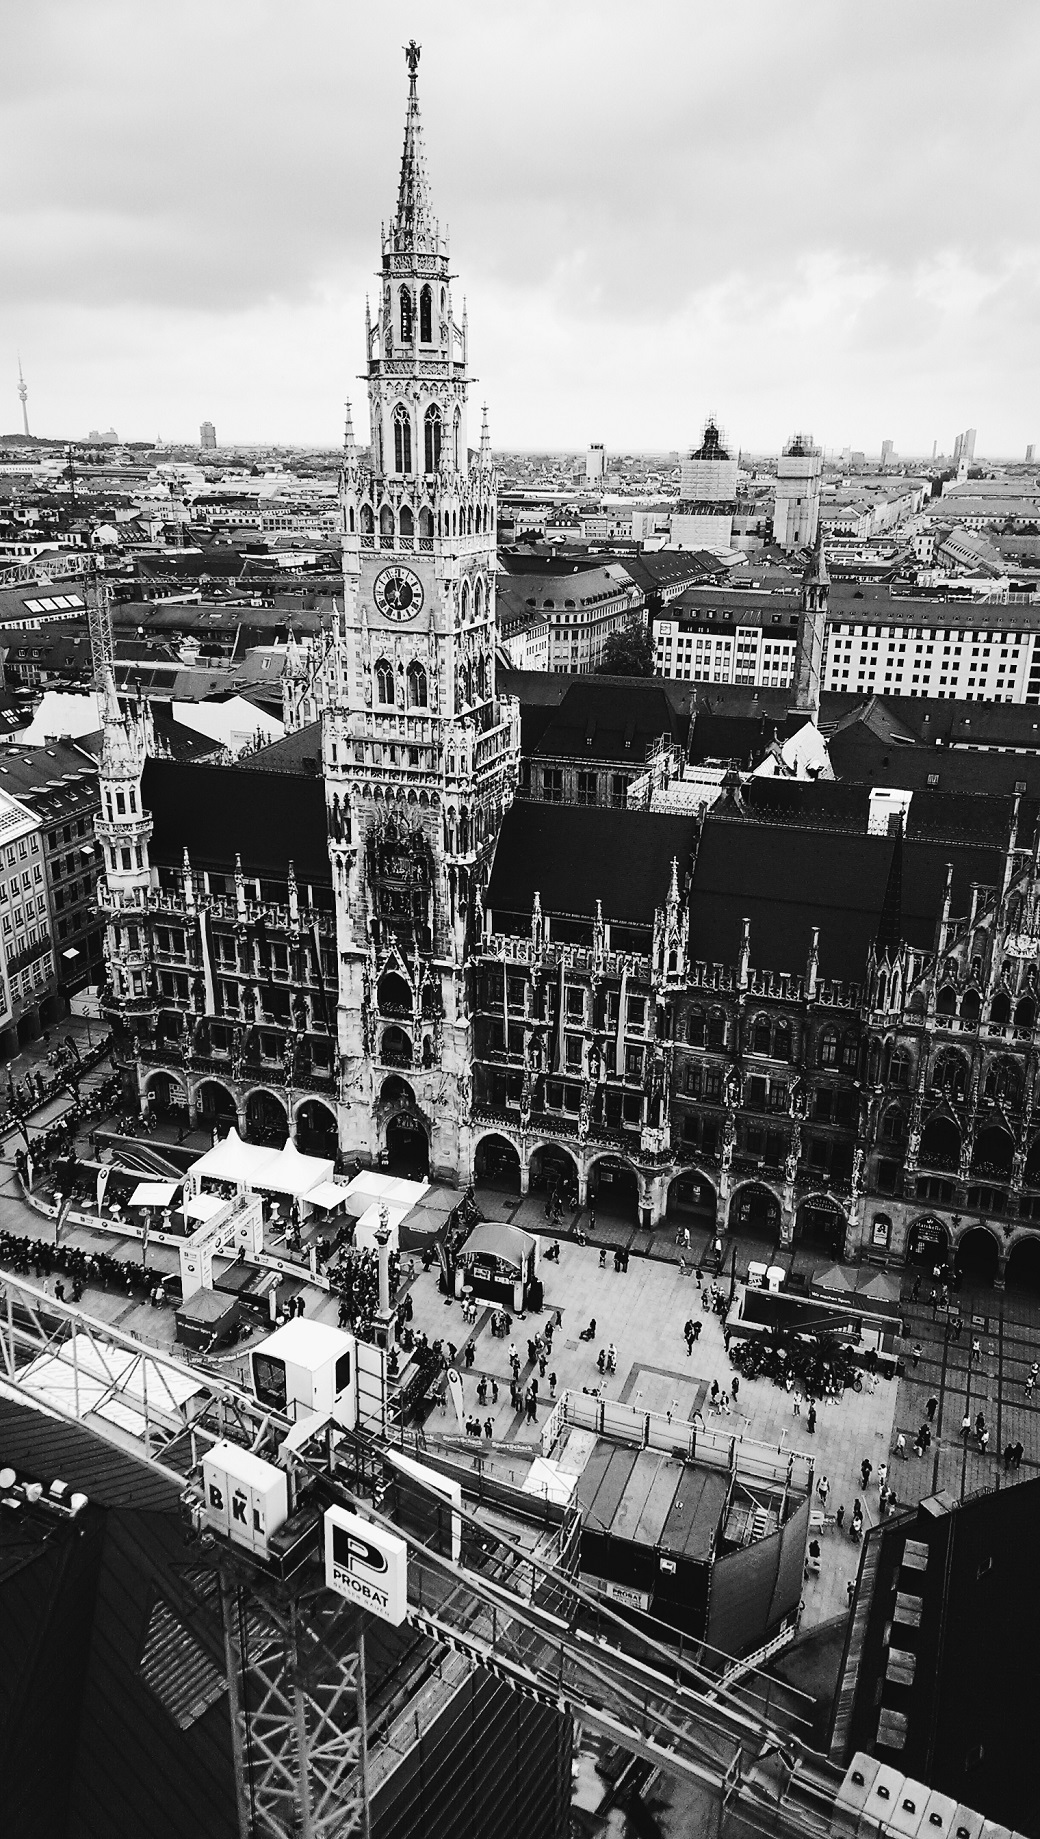 New Town Hall (Neues Rathaus) at the Marienplatz